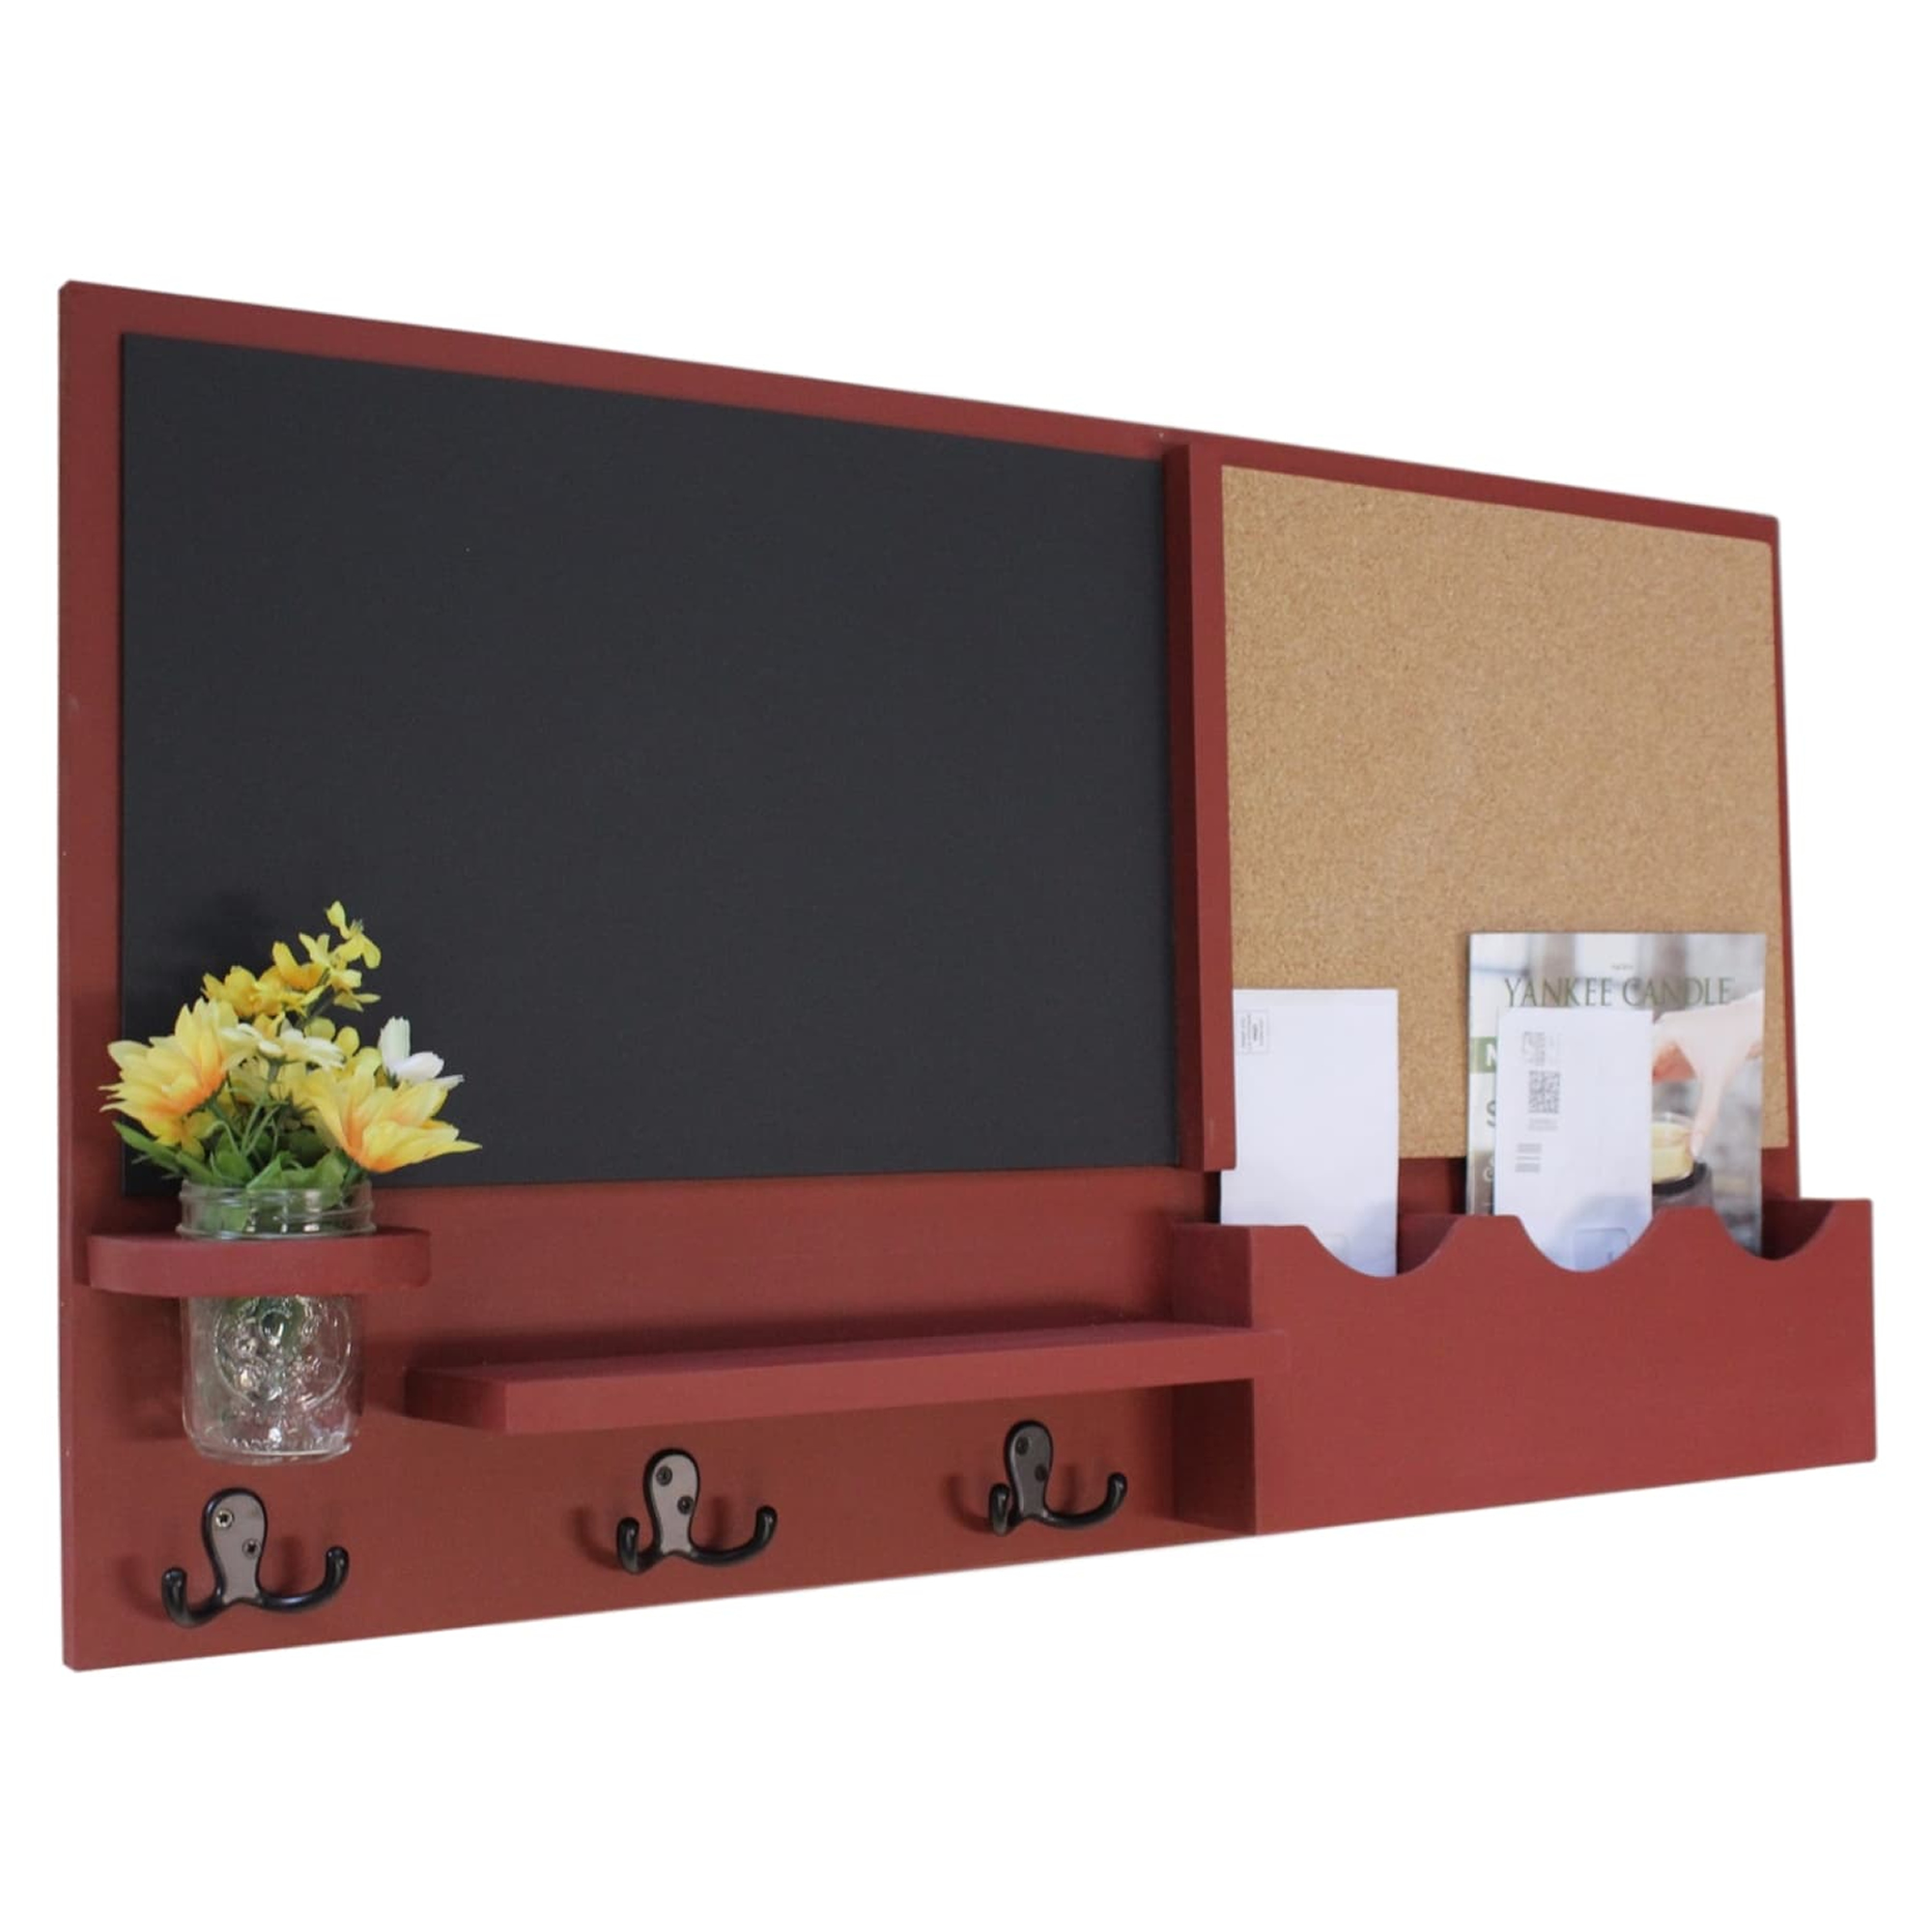 Message Center with Two Mail Slots, Chalkboard, Cork Board, Coat Hooks & Mason Jar